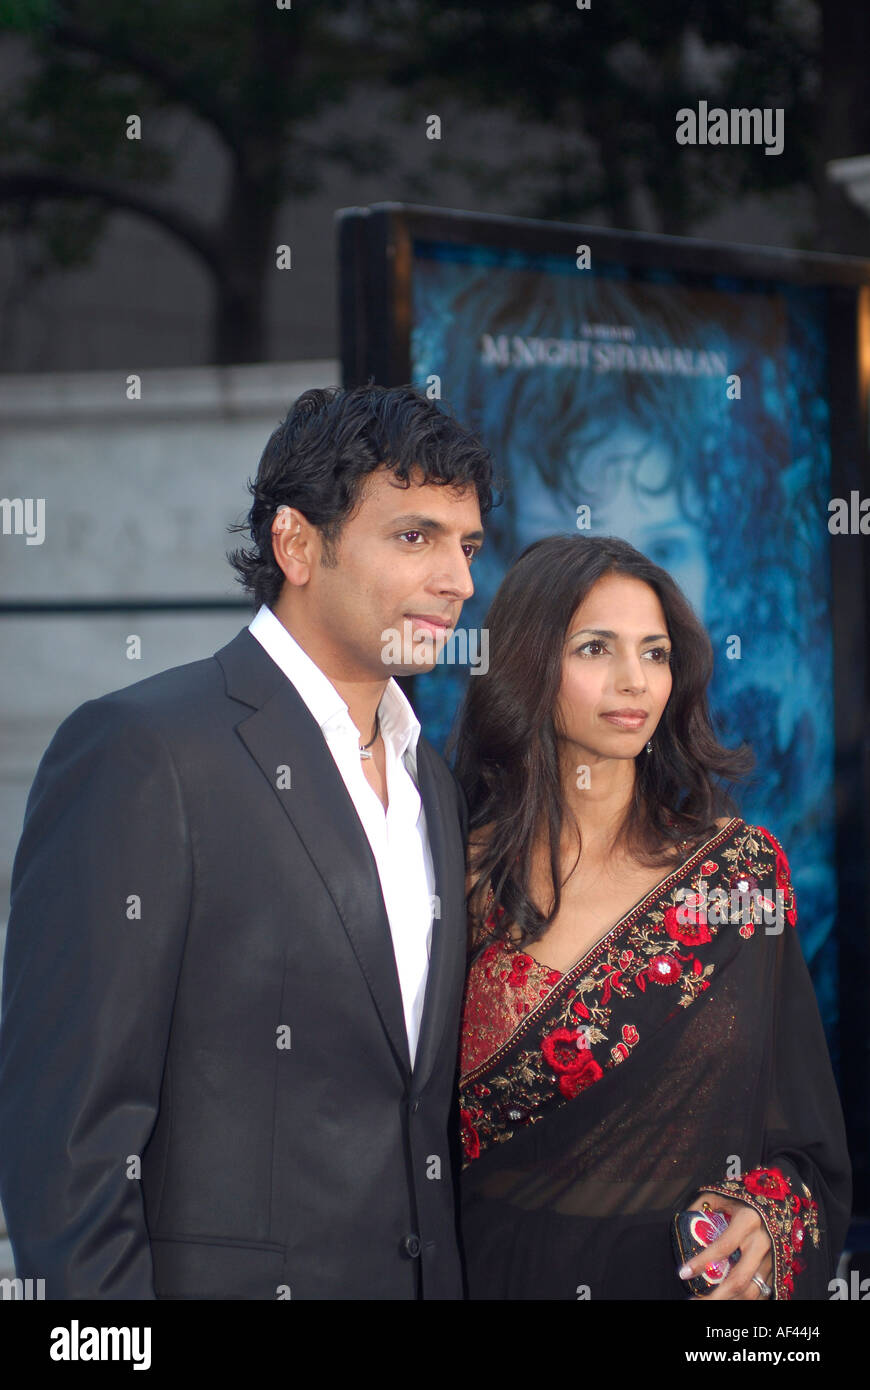 DIRECTOR AND WRITER M NIGHT SHYAMALAN WITH HIS WIFE BHAVNA